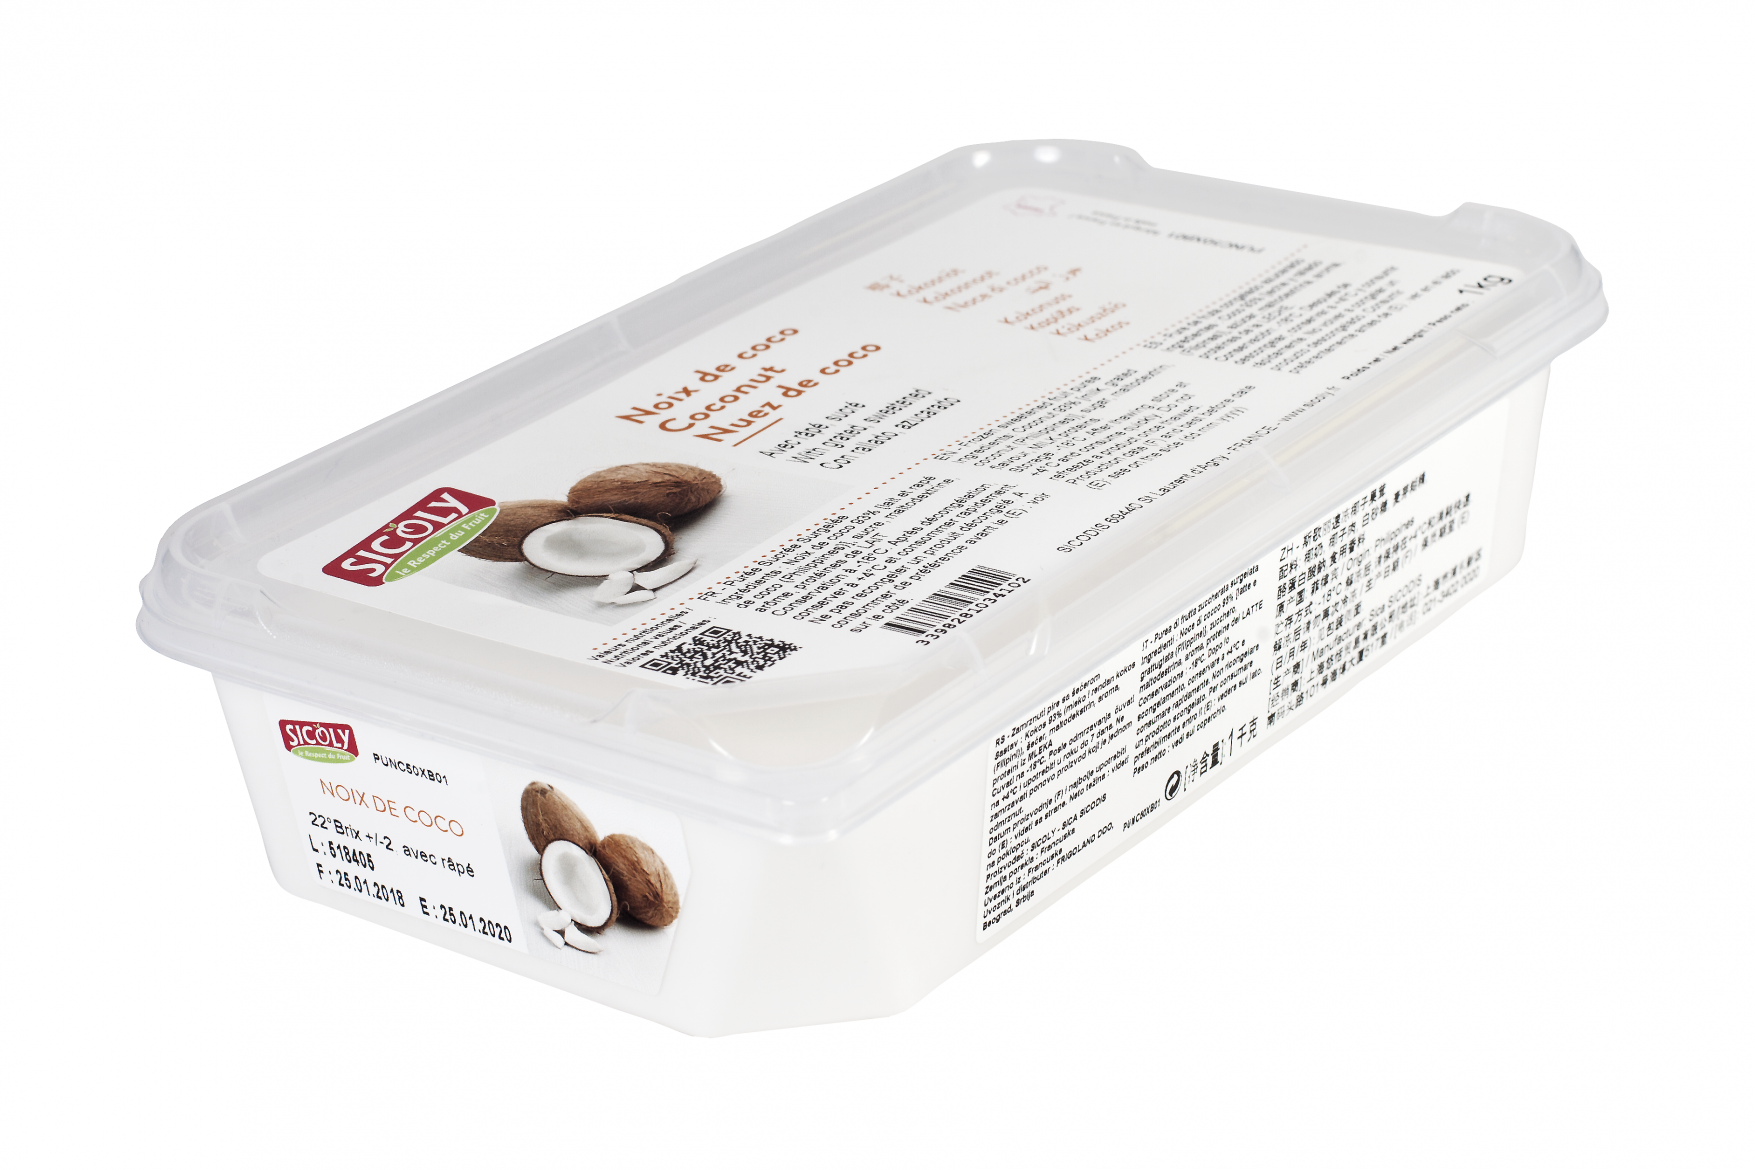 Sicoly product image No added sugar frozen coconut milk with grated coconut